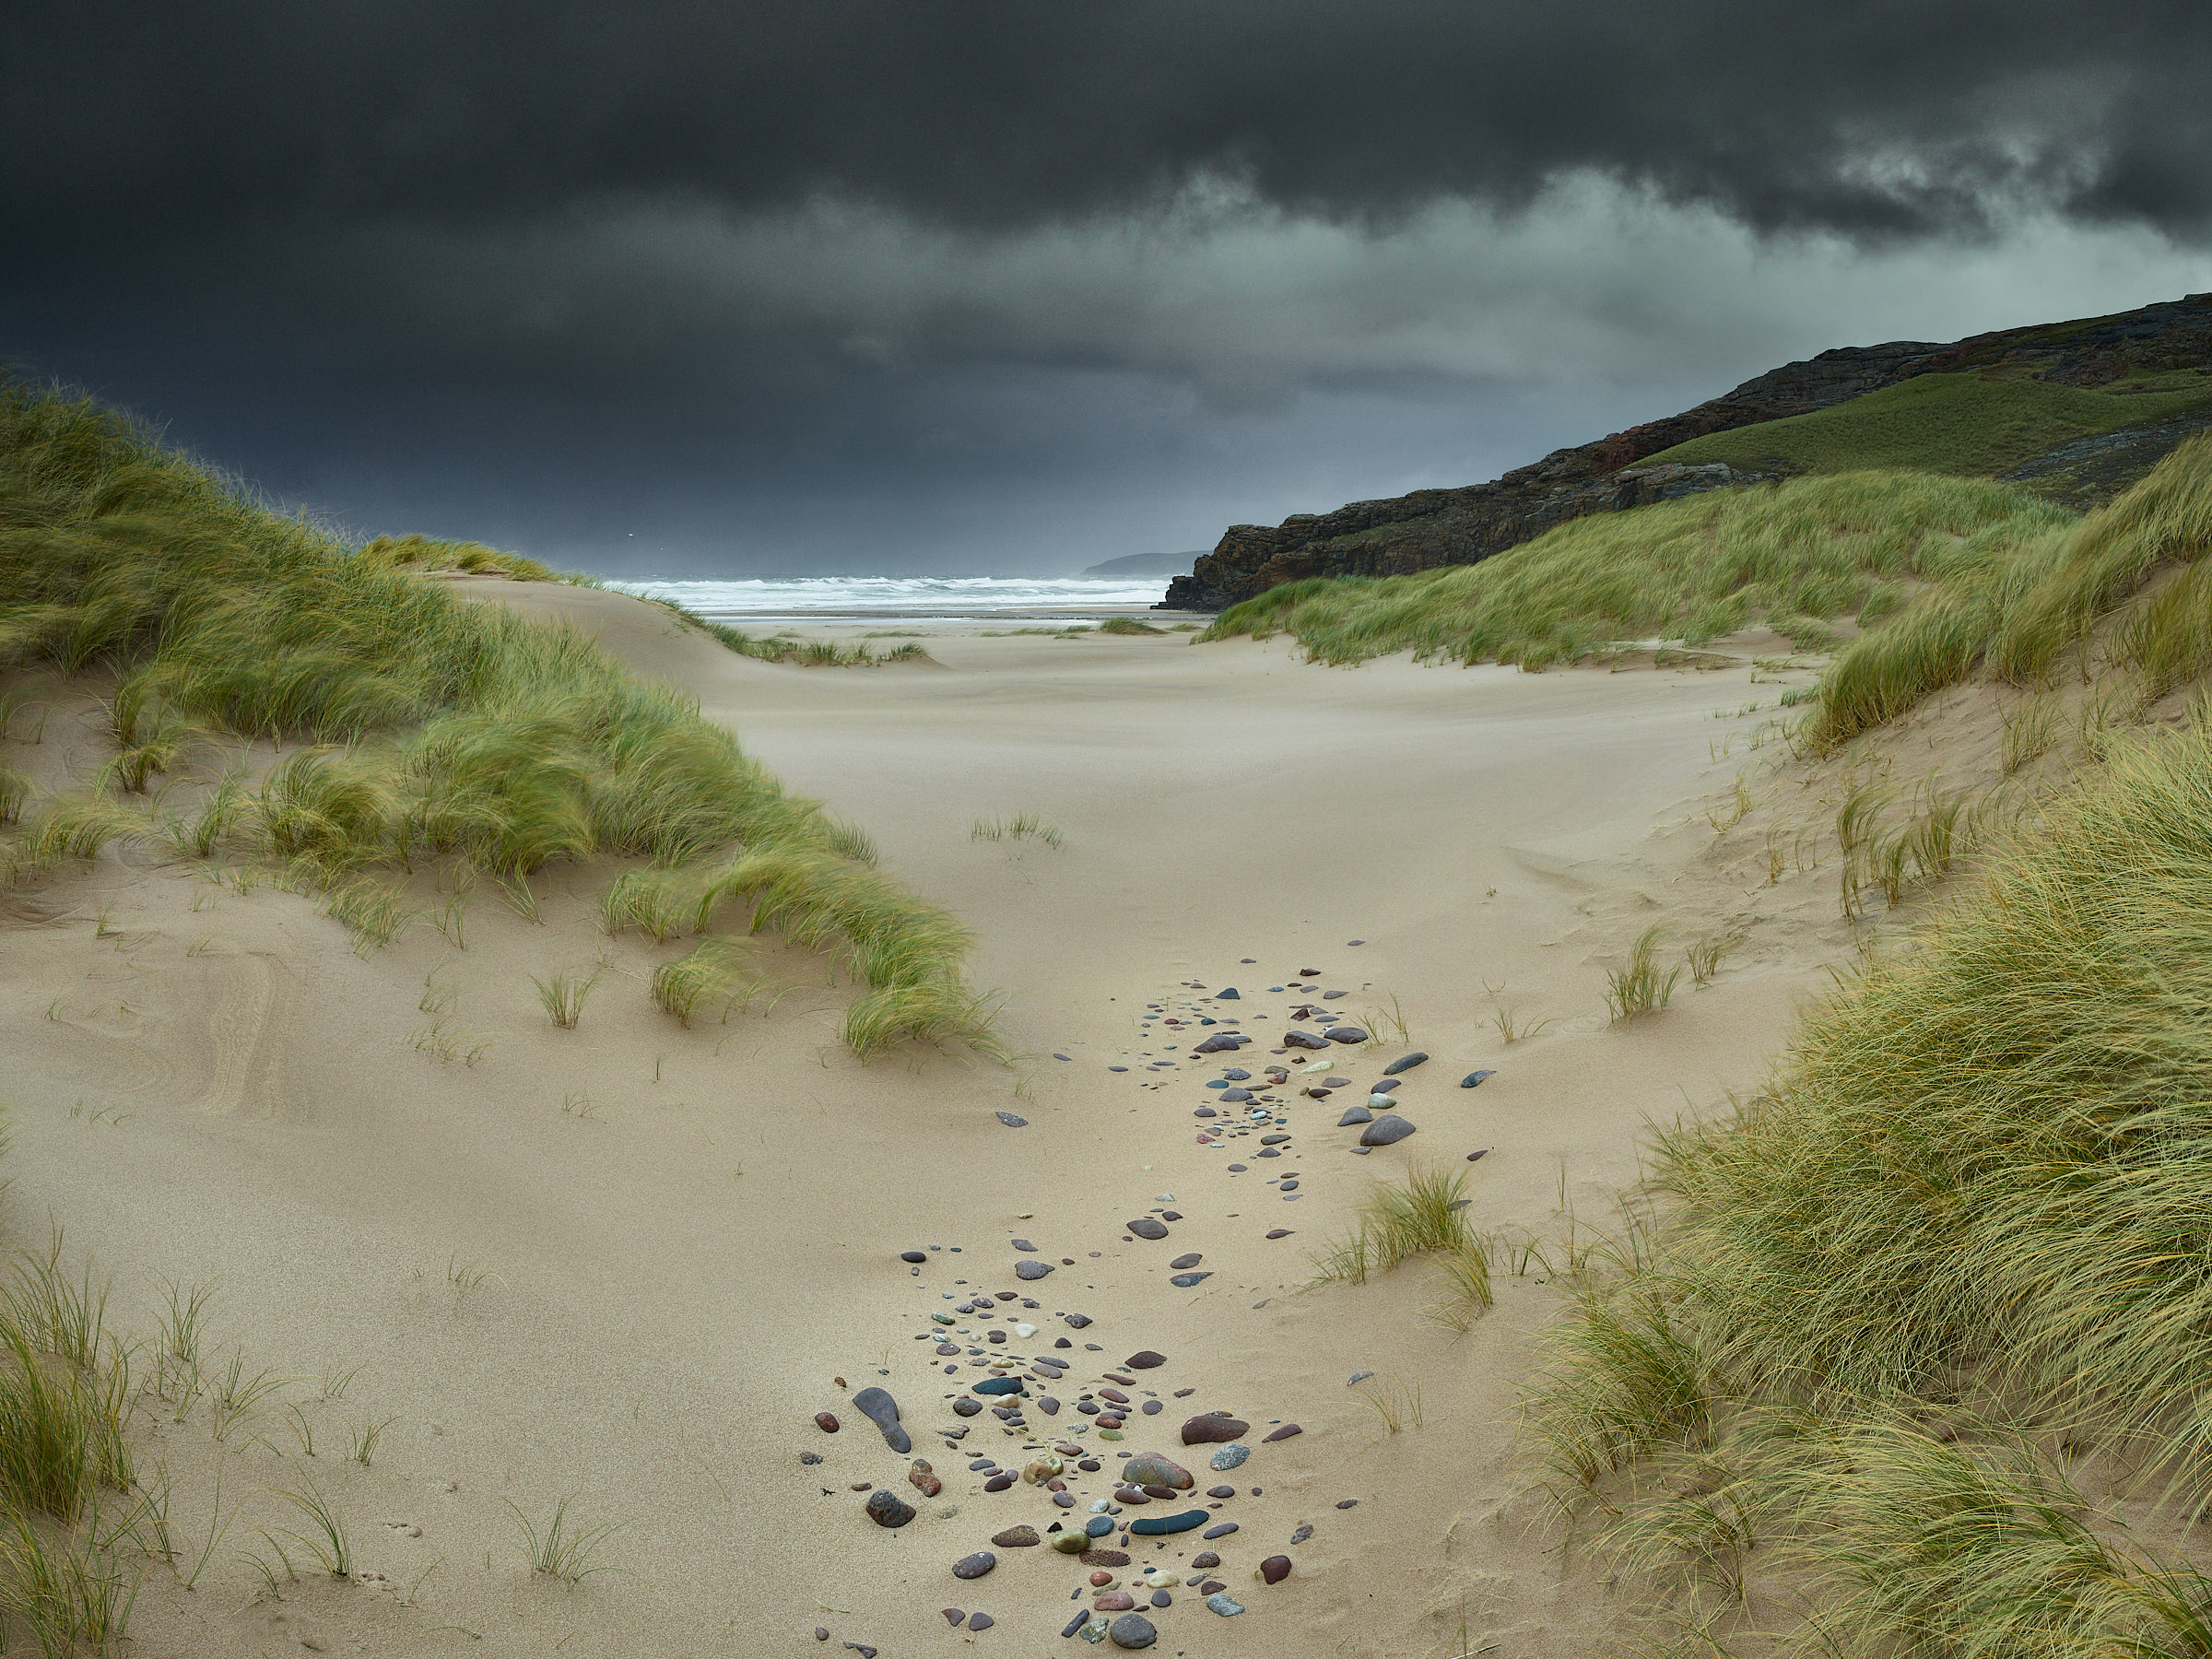 Sandwood Bay, Sutherland. It was wild! by 4*Paul in Regular Member Gallery